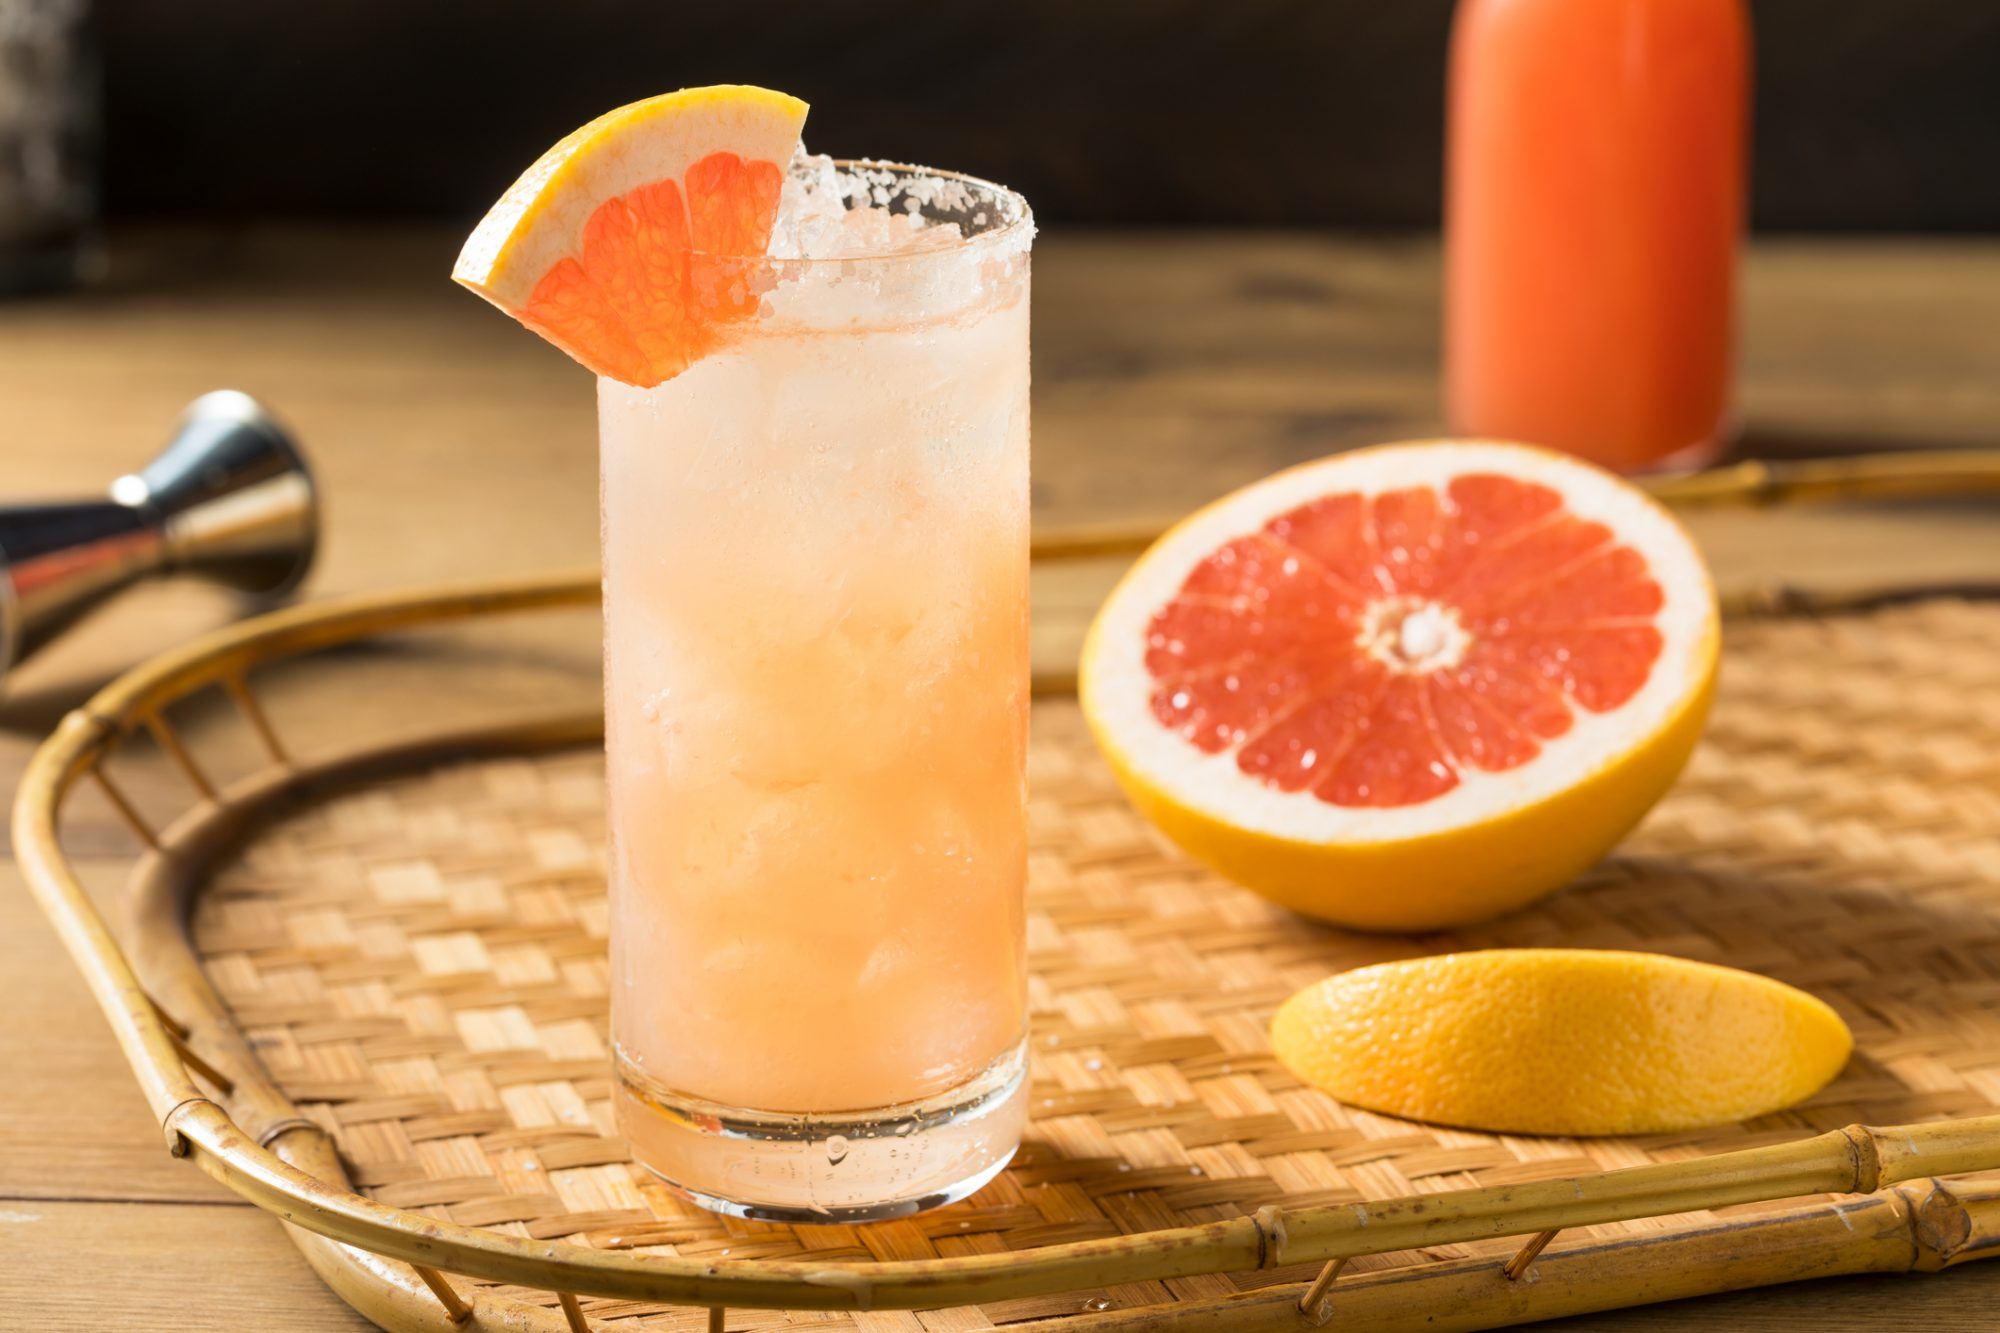 How To Make the Best Paloma